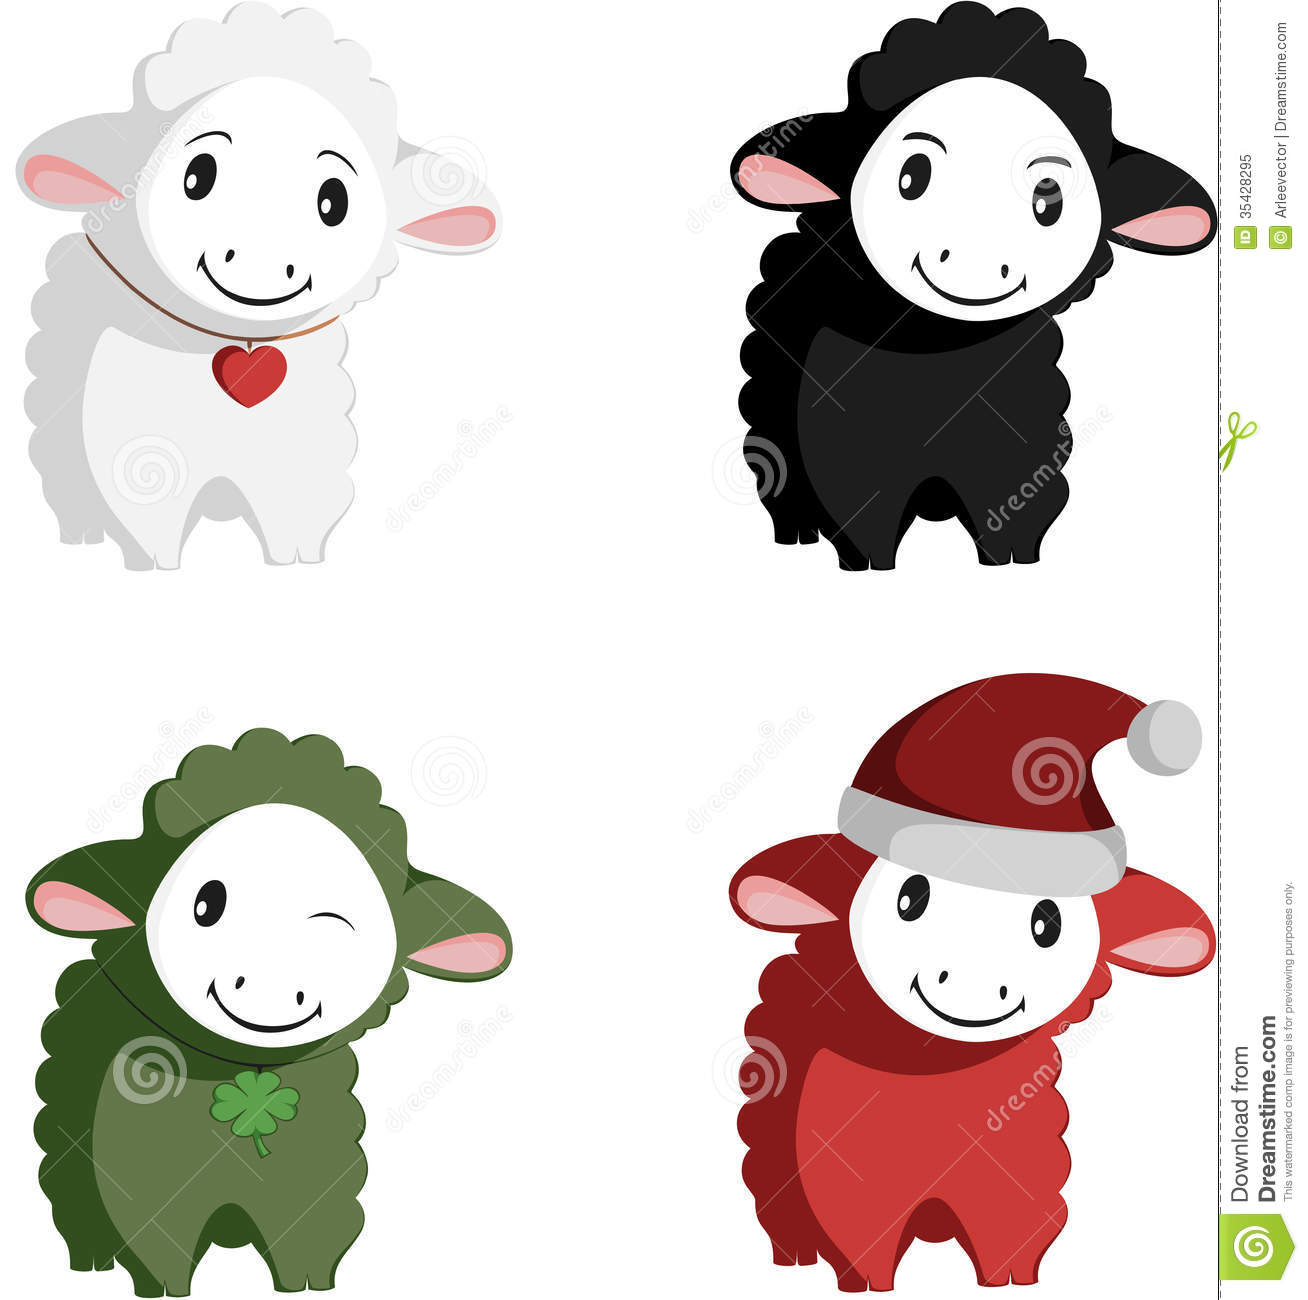 happy sheep mascots royalty free stock photo image 35428295